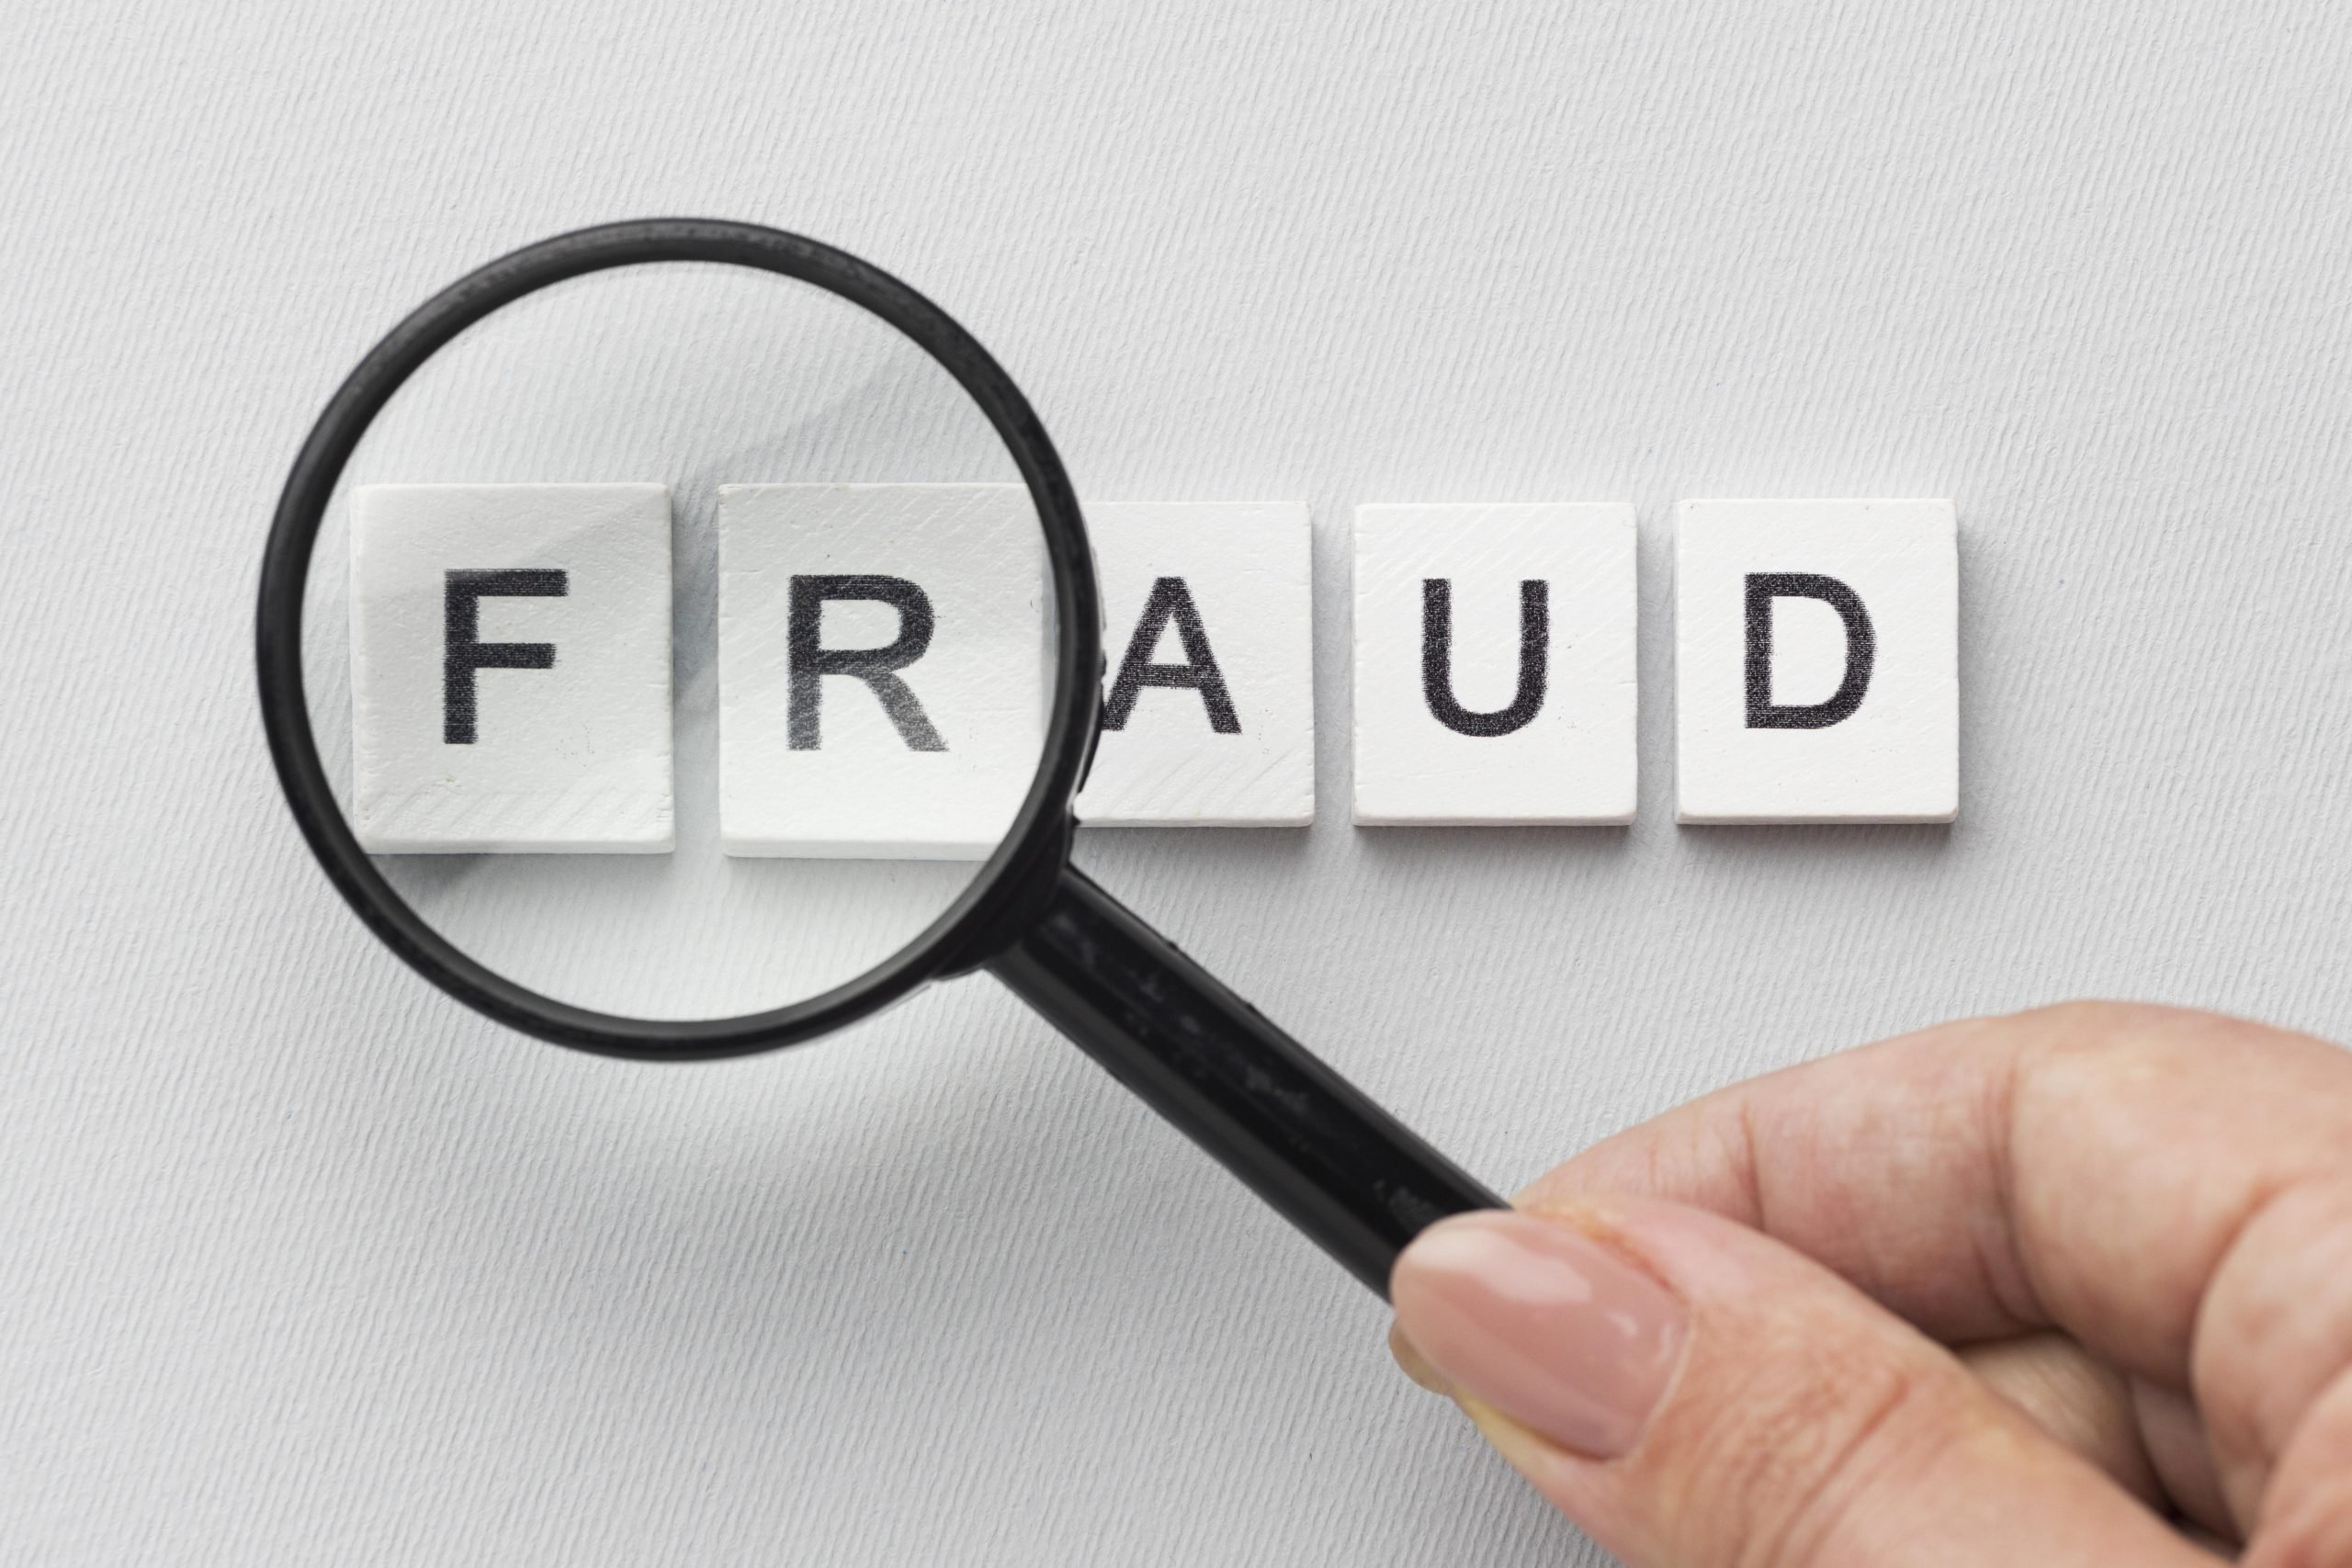 Fraud awareness increased significantly during the pandemy